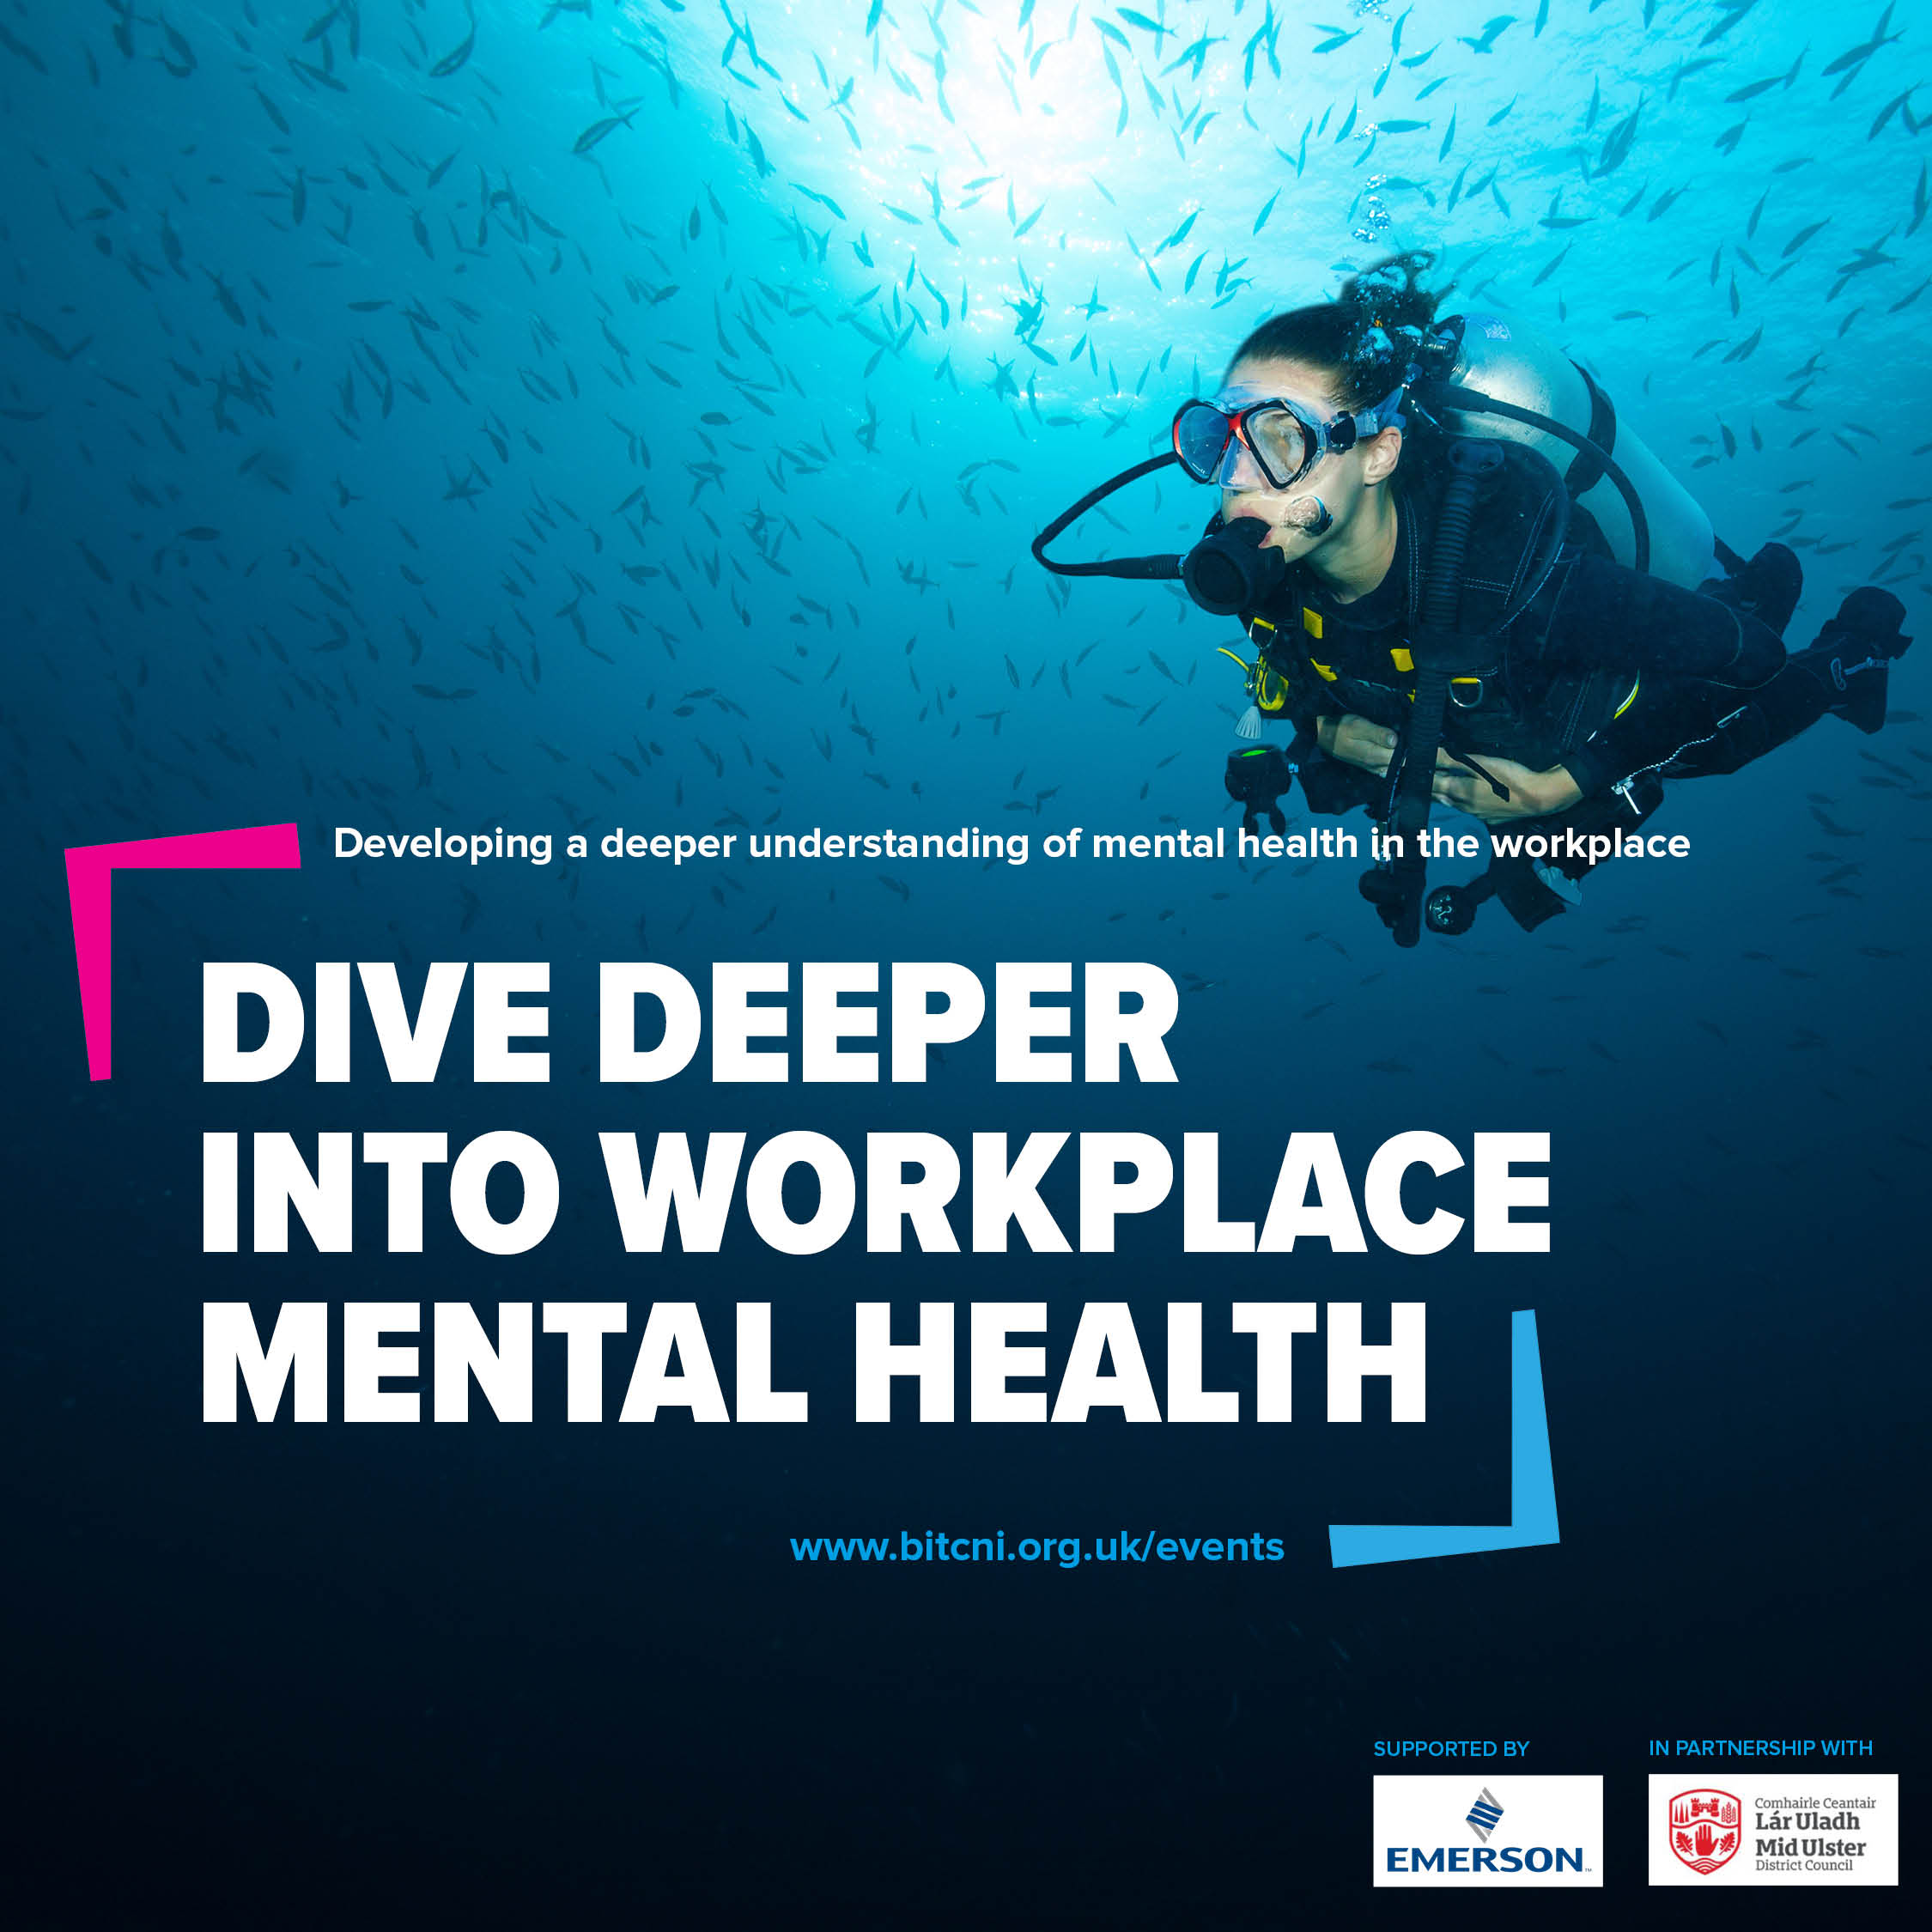 191003_Developing a deeper understanding of mental health in the workplace3